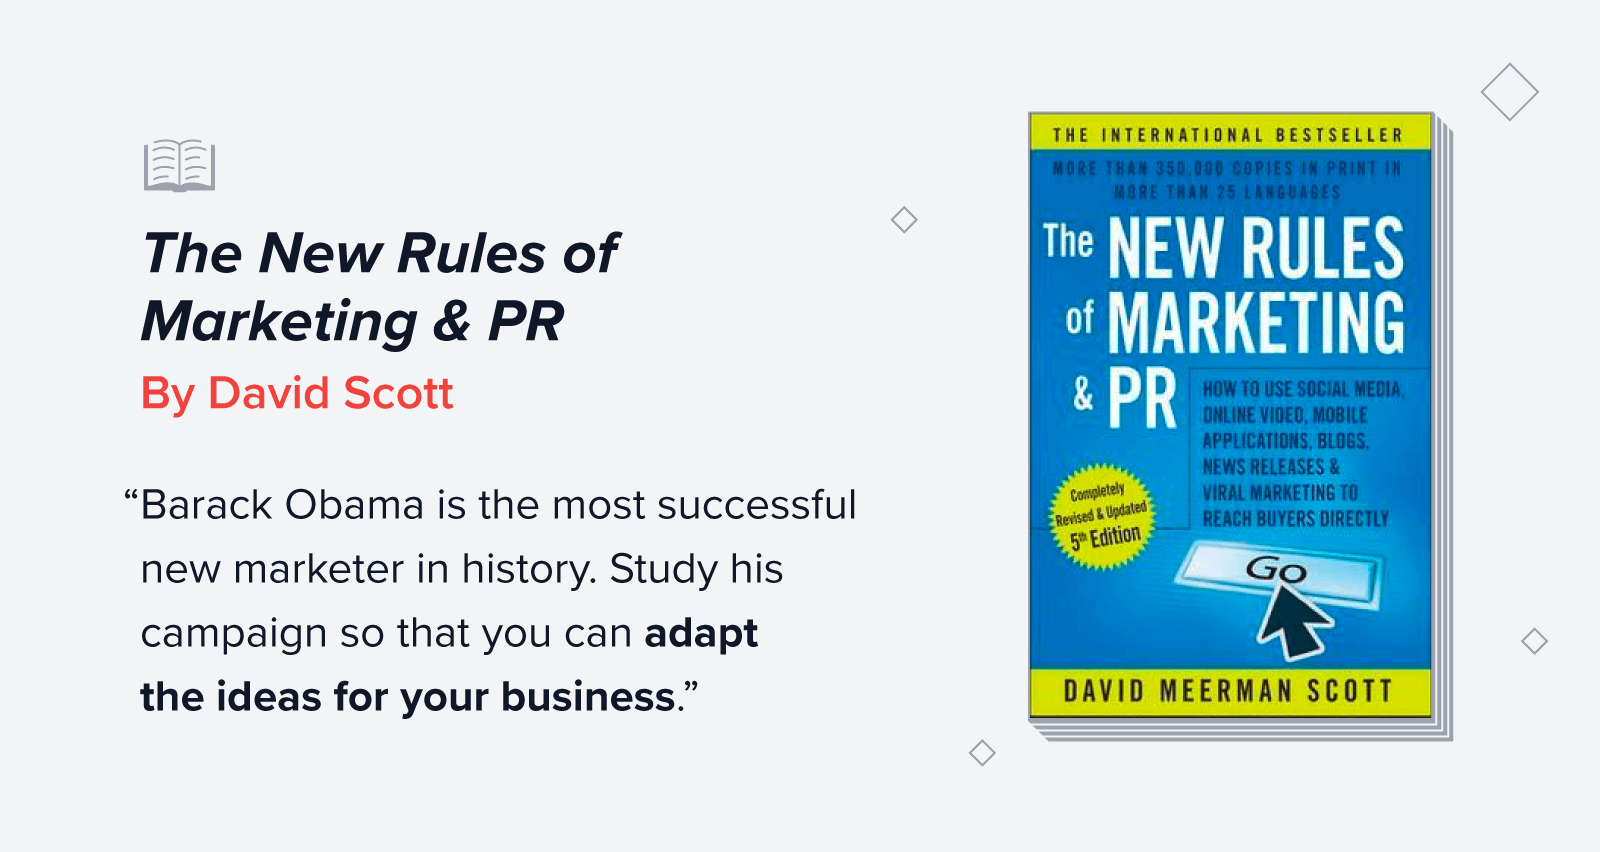 The New Rules of Marketing and PR quote